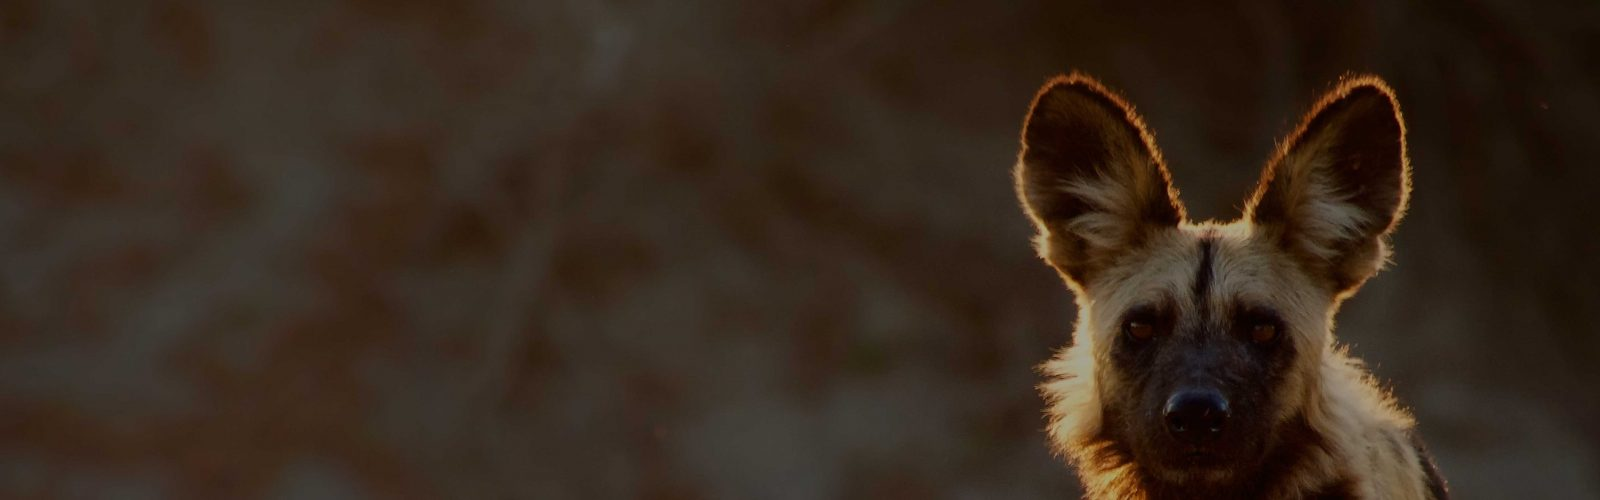 Cropped photograph of wild dog by Andrew Macdonald